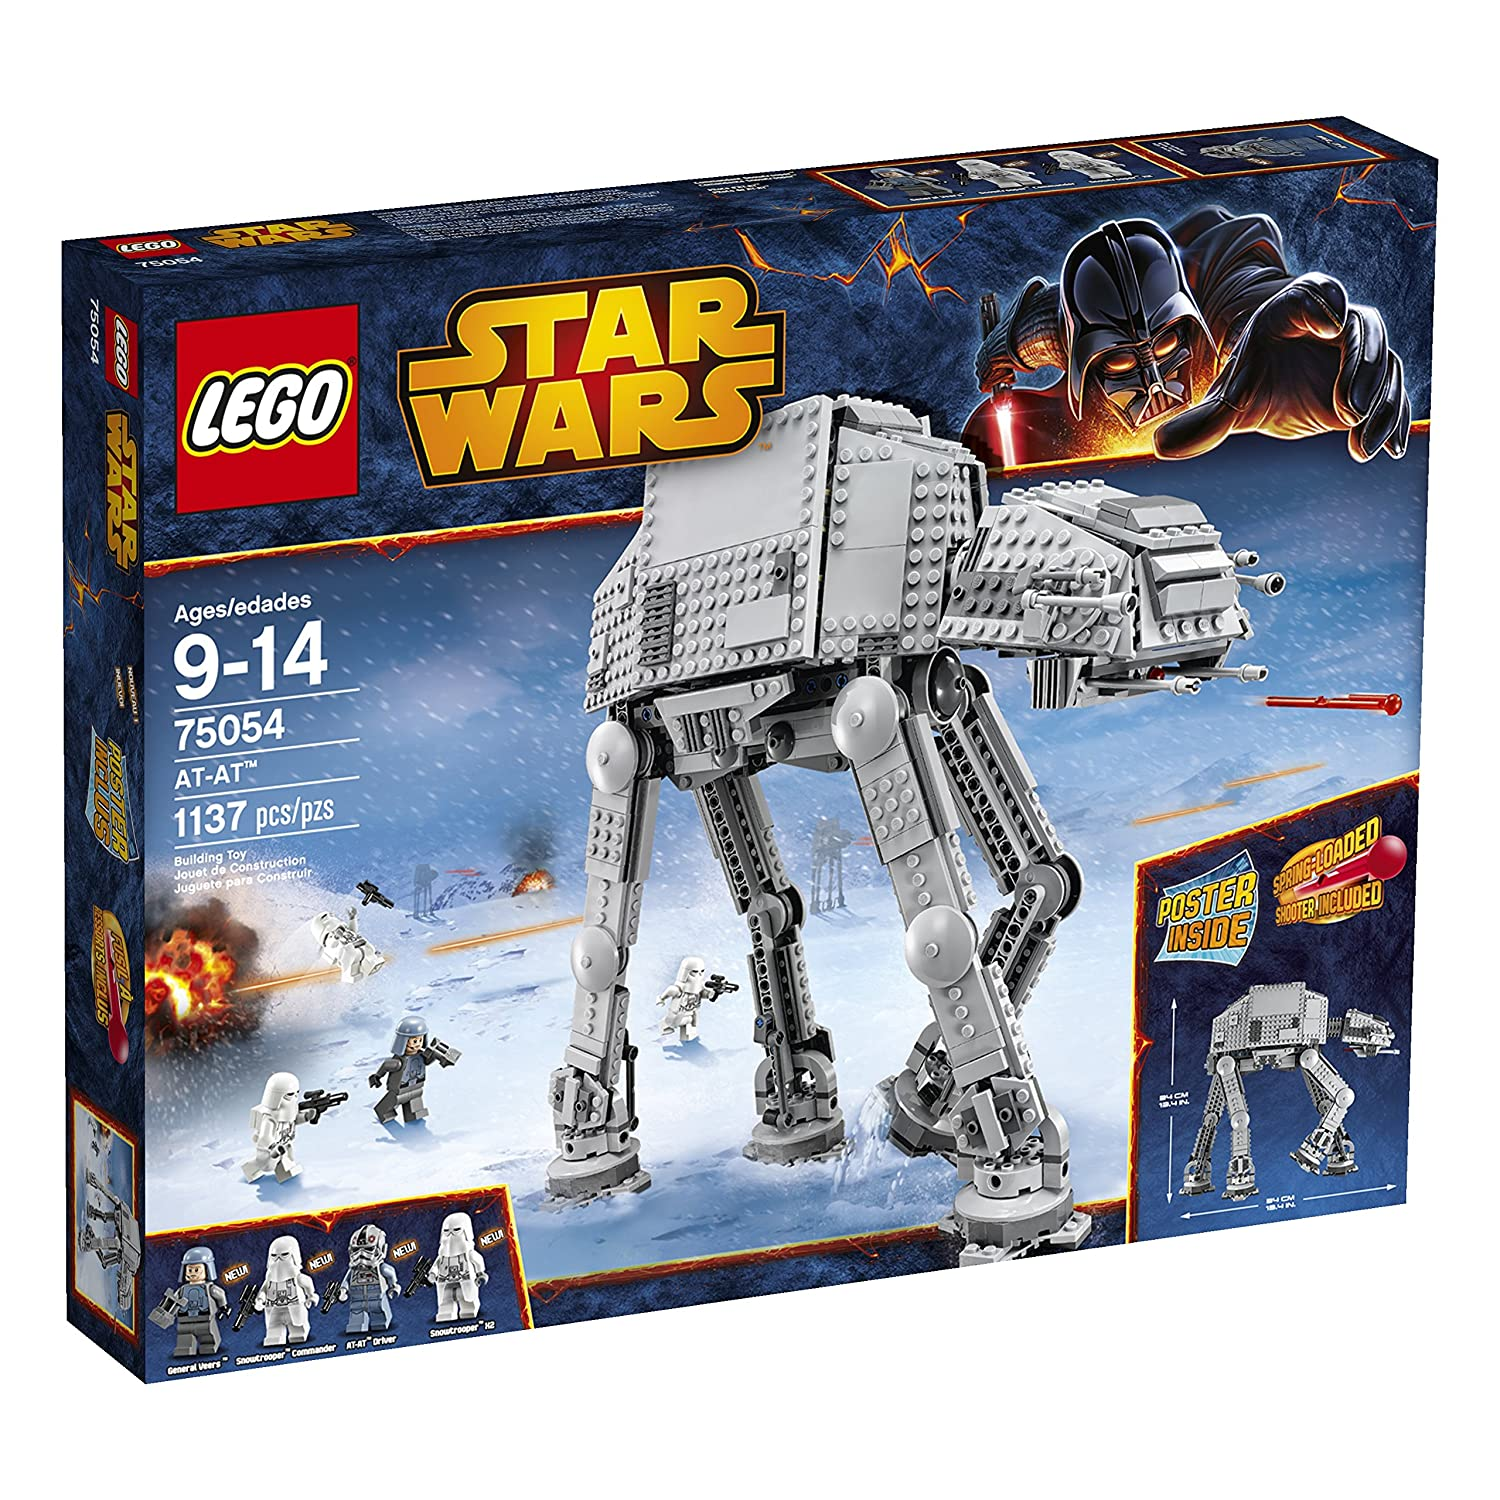 LEGO Star Wars 75054 AT-AT Building Toy (Discontinued by manufacturer)